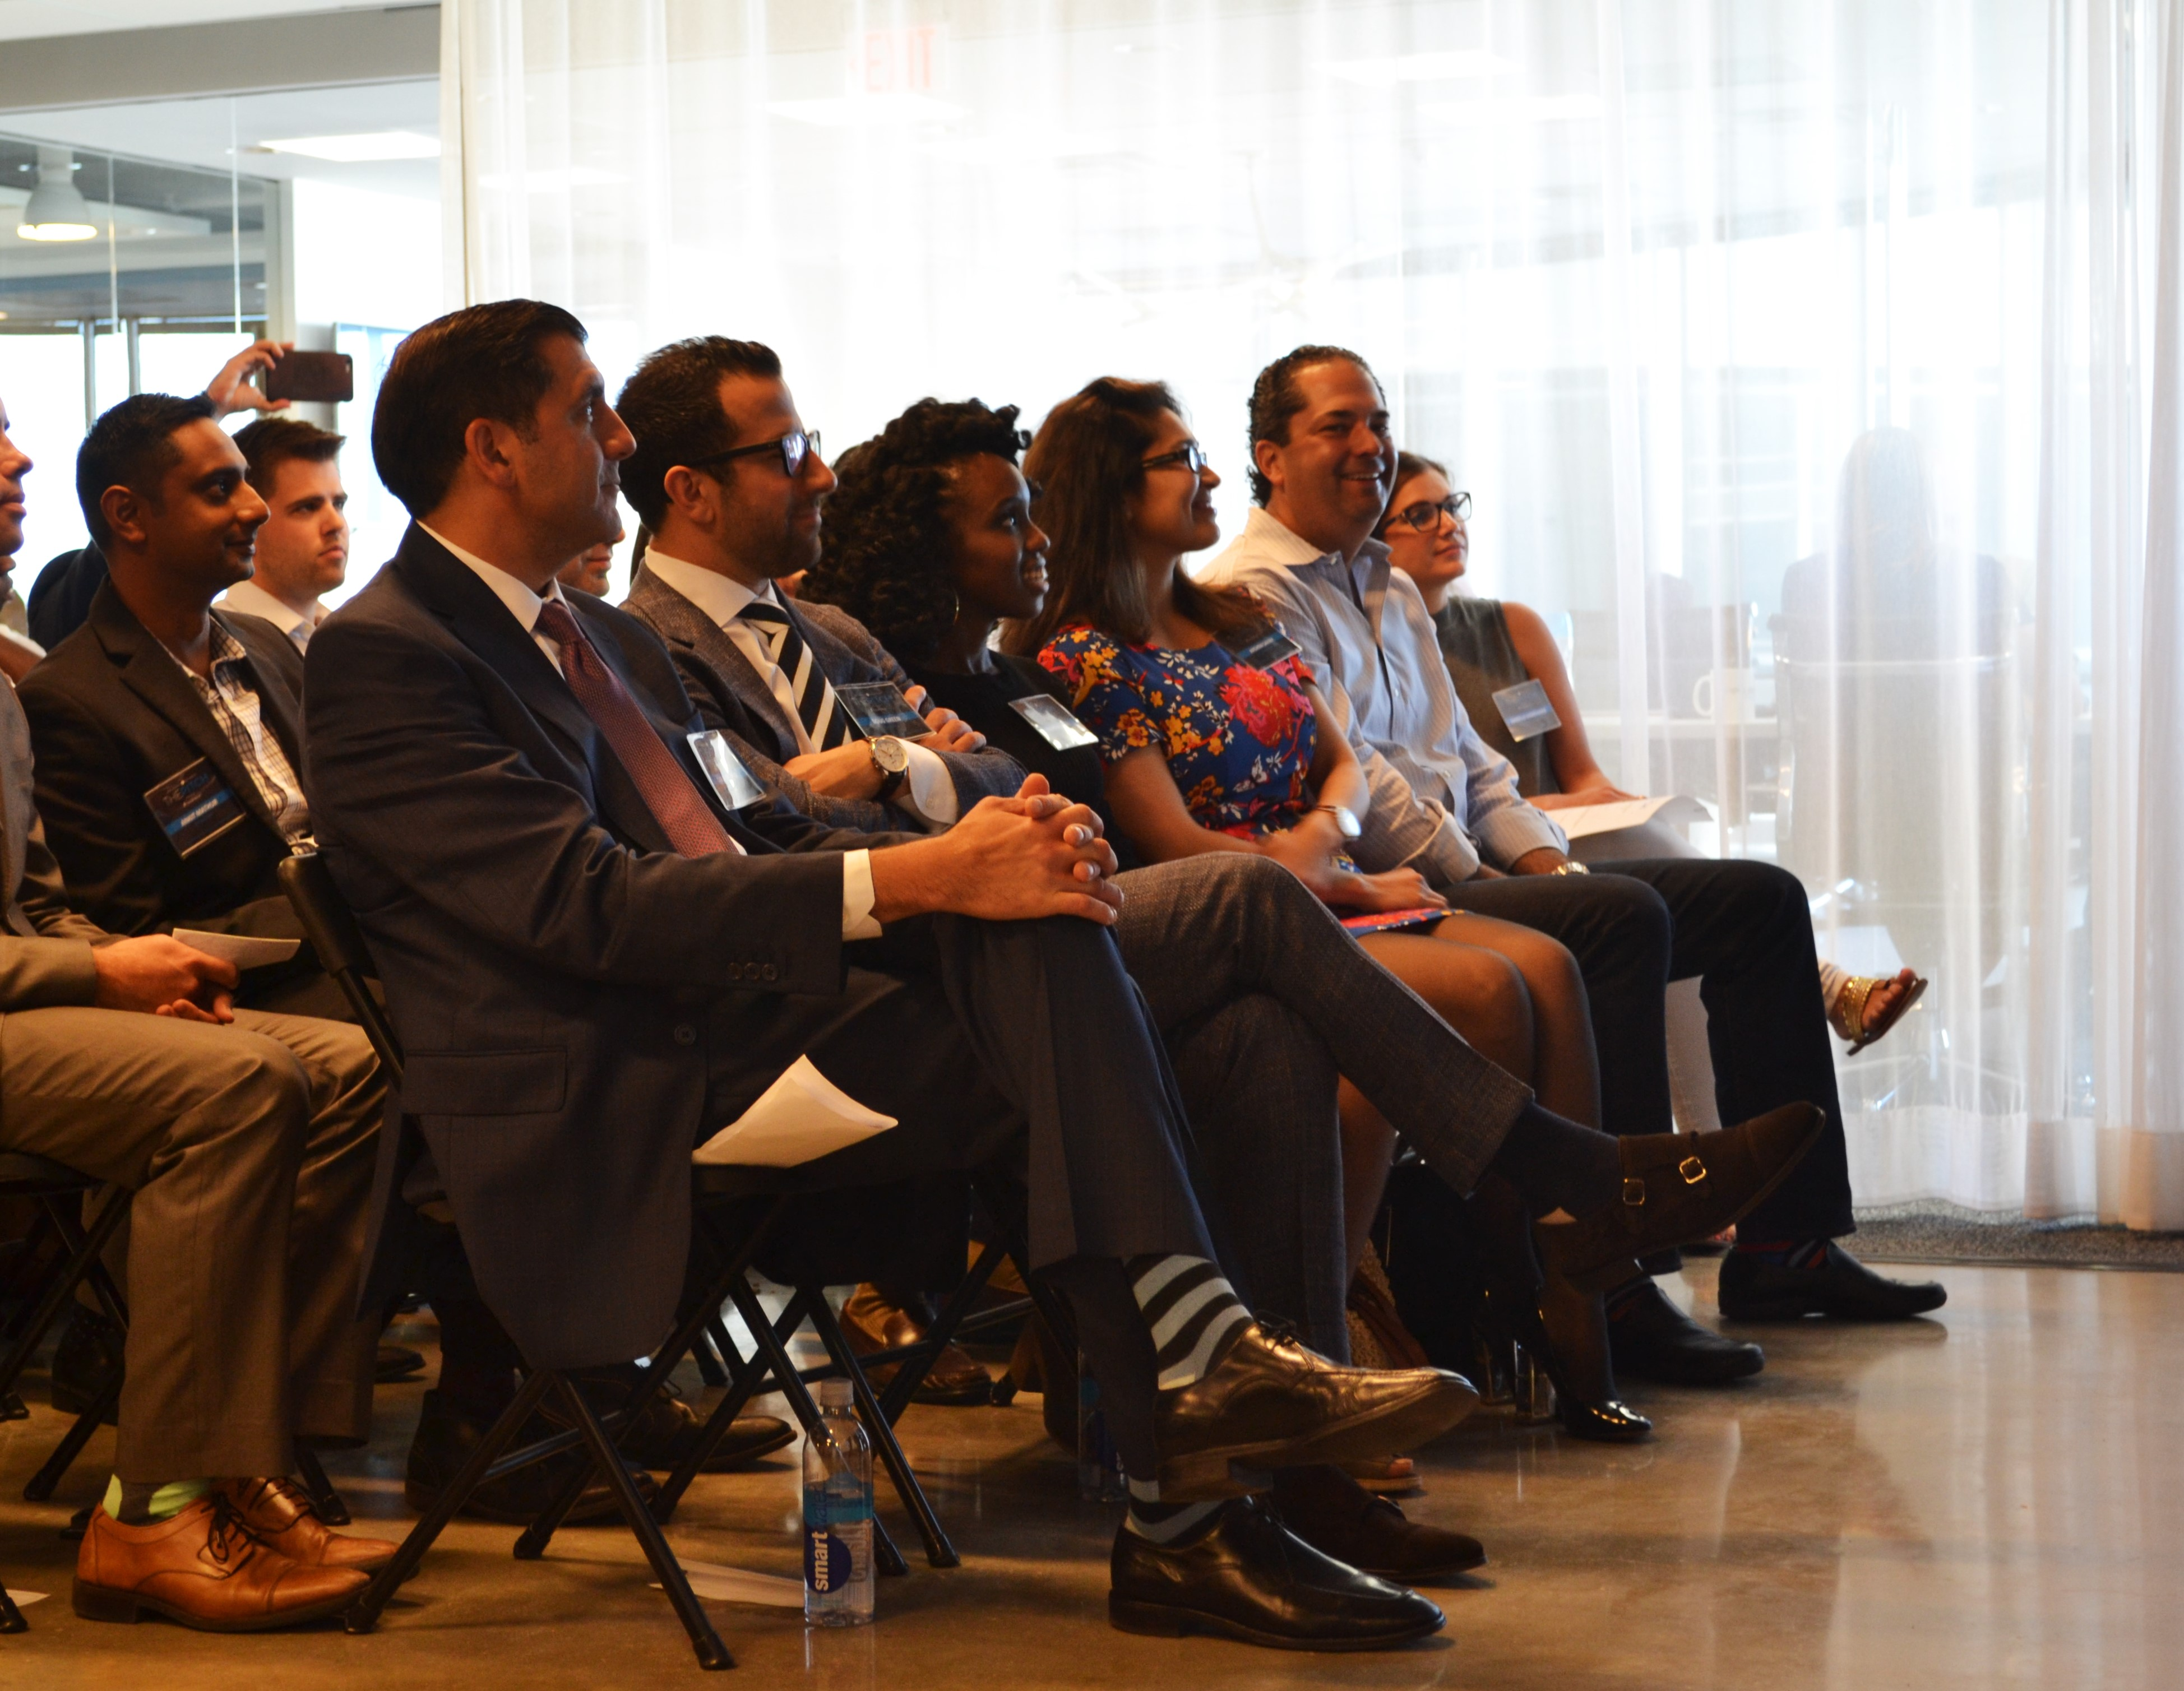 The Pitch judges in the front row. From left to right: Dan Tropeano, Douglas Green, Fabiola Cineas, Archna Sahay and Wayne Kimmel.